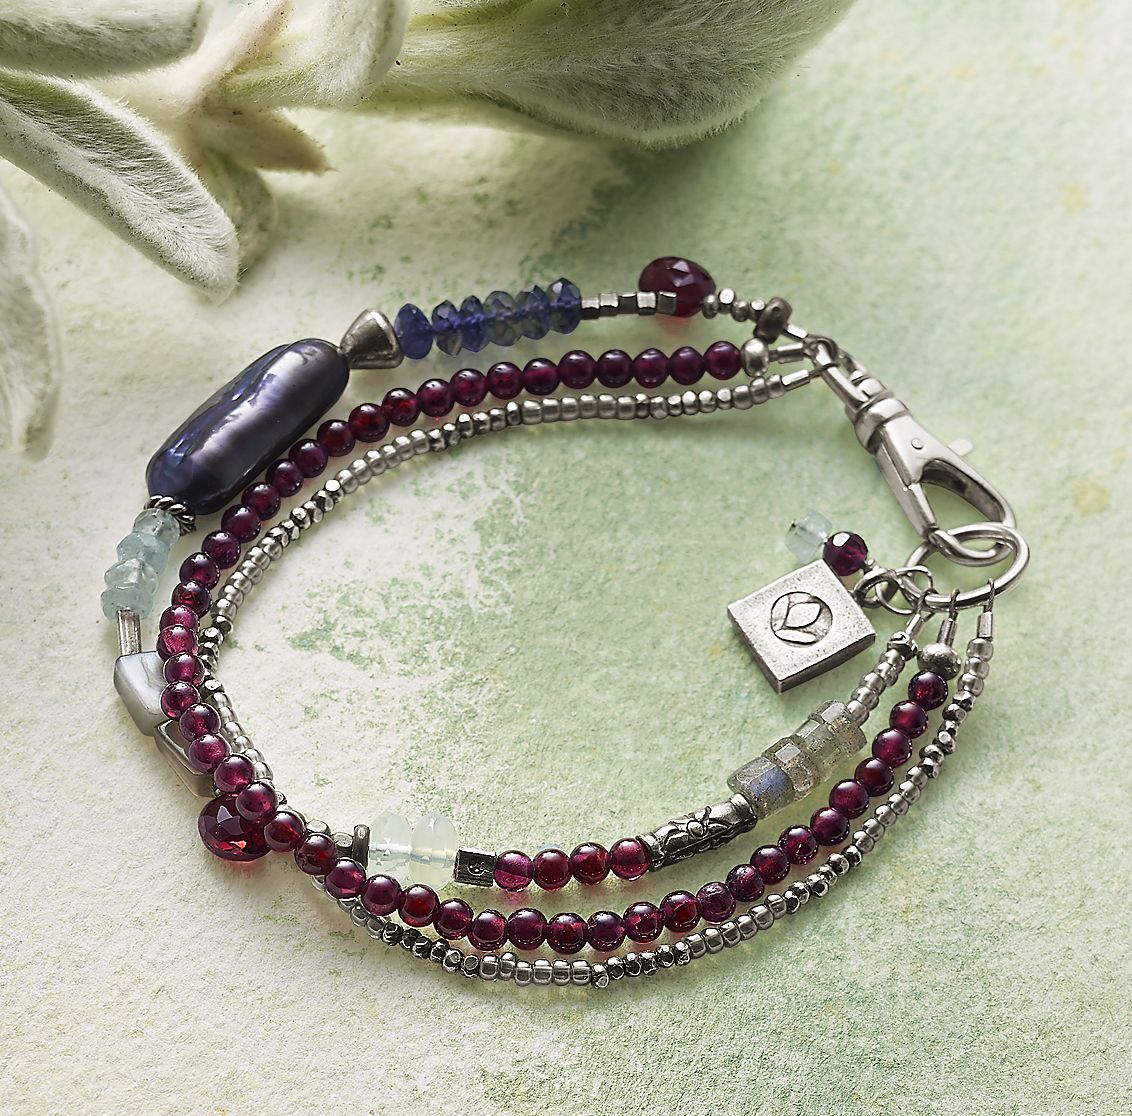 Superb Peacock Pearl U0026 Partners Bracelet   Handmade Garnet, Sterling And Gemstone  Bracelet. Jewelry DesignJewelry IdeasDiy ...